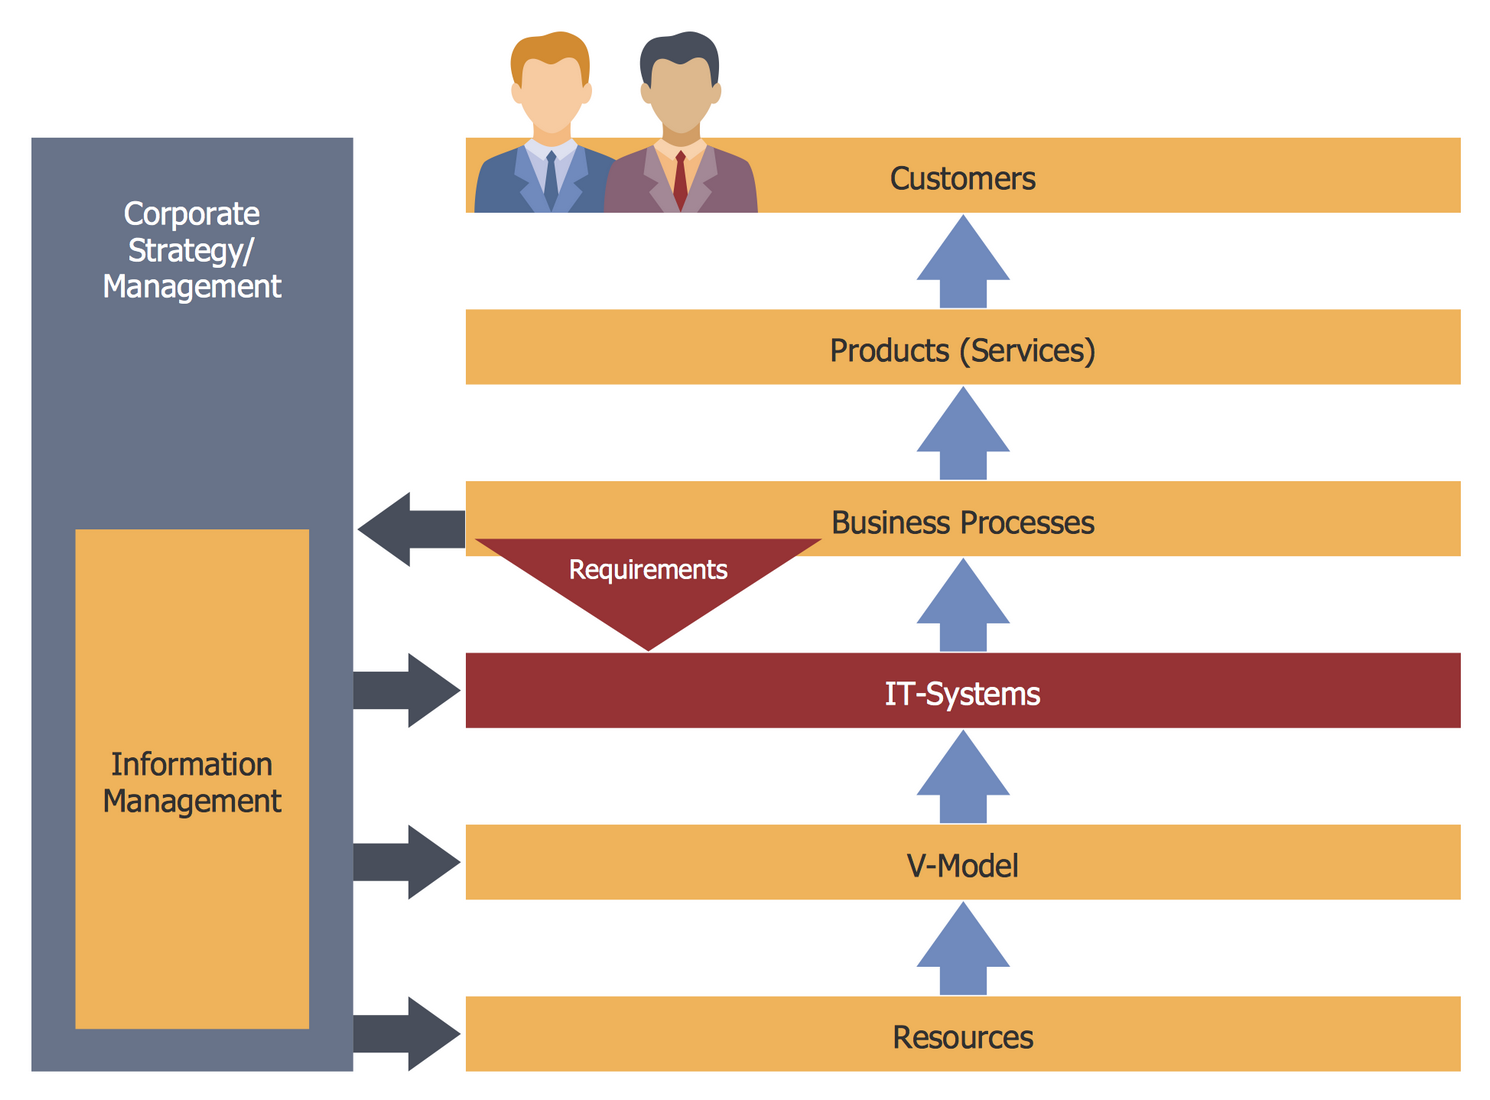 Business Processes and IT Systems